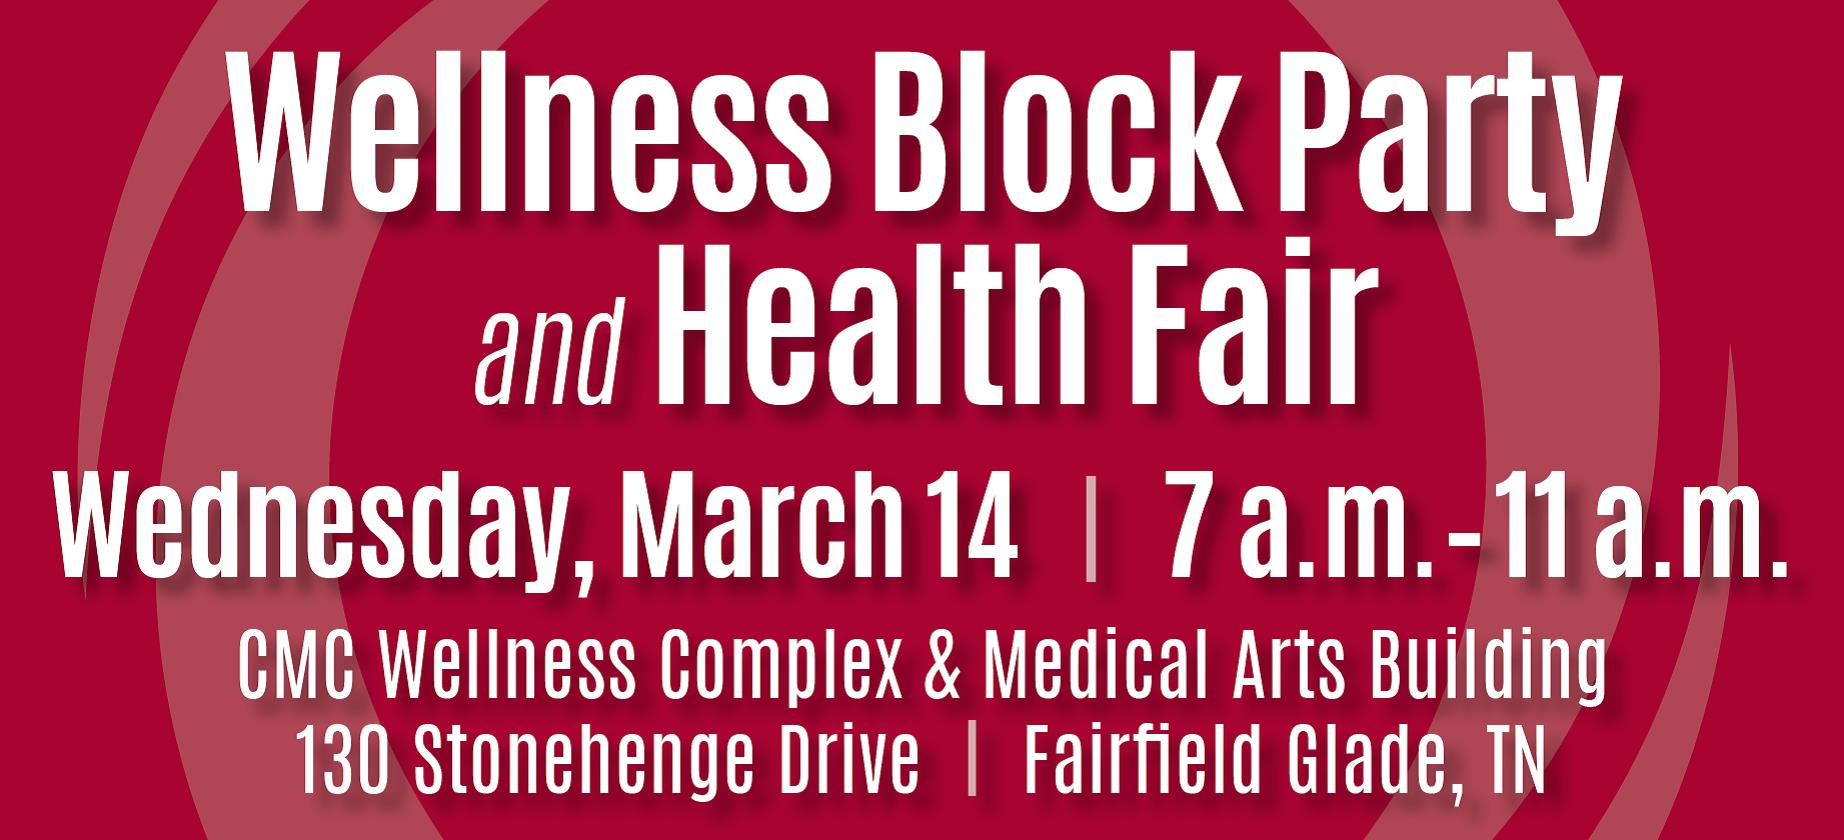 Fairfield Glade Health Fair